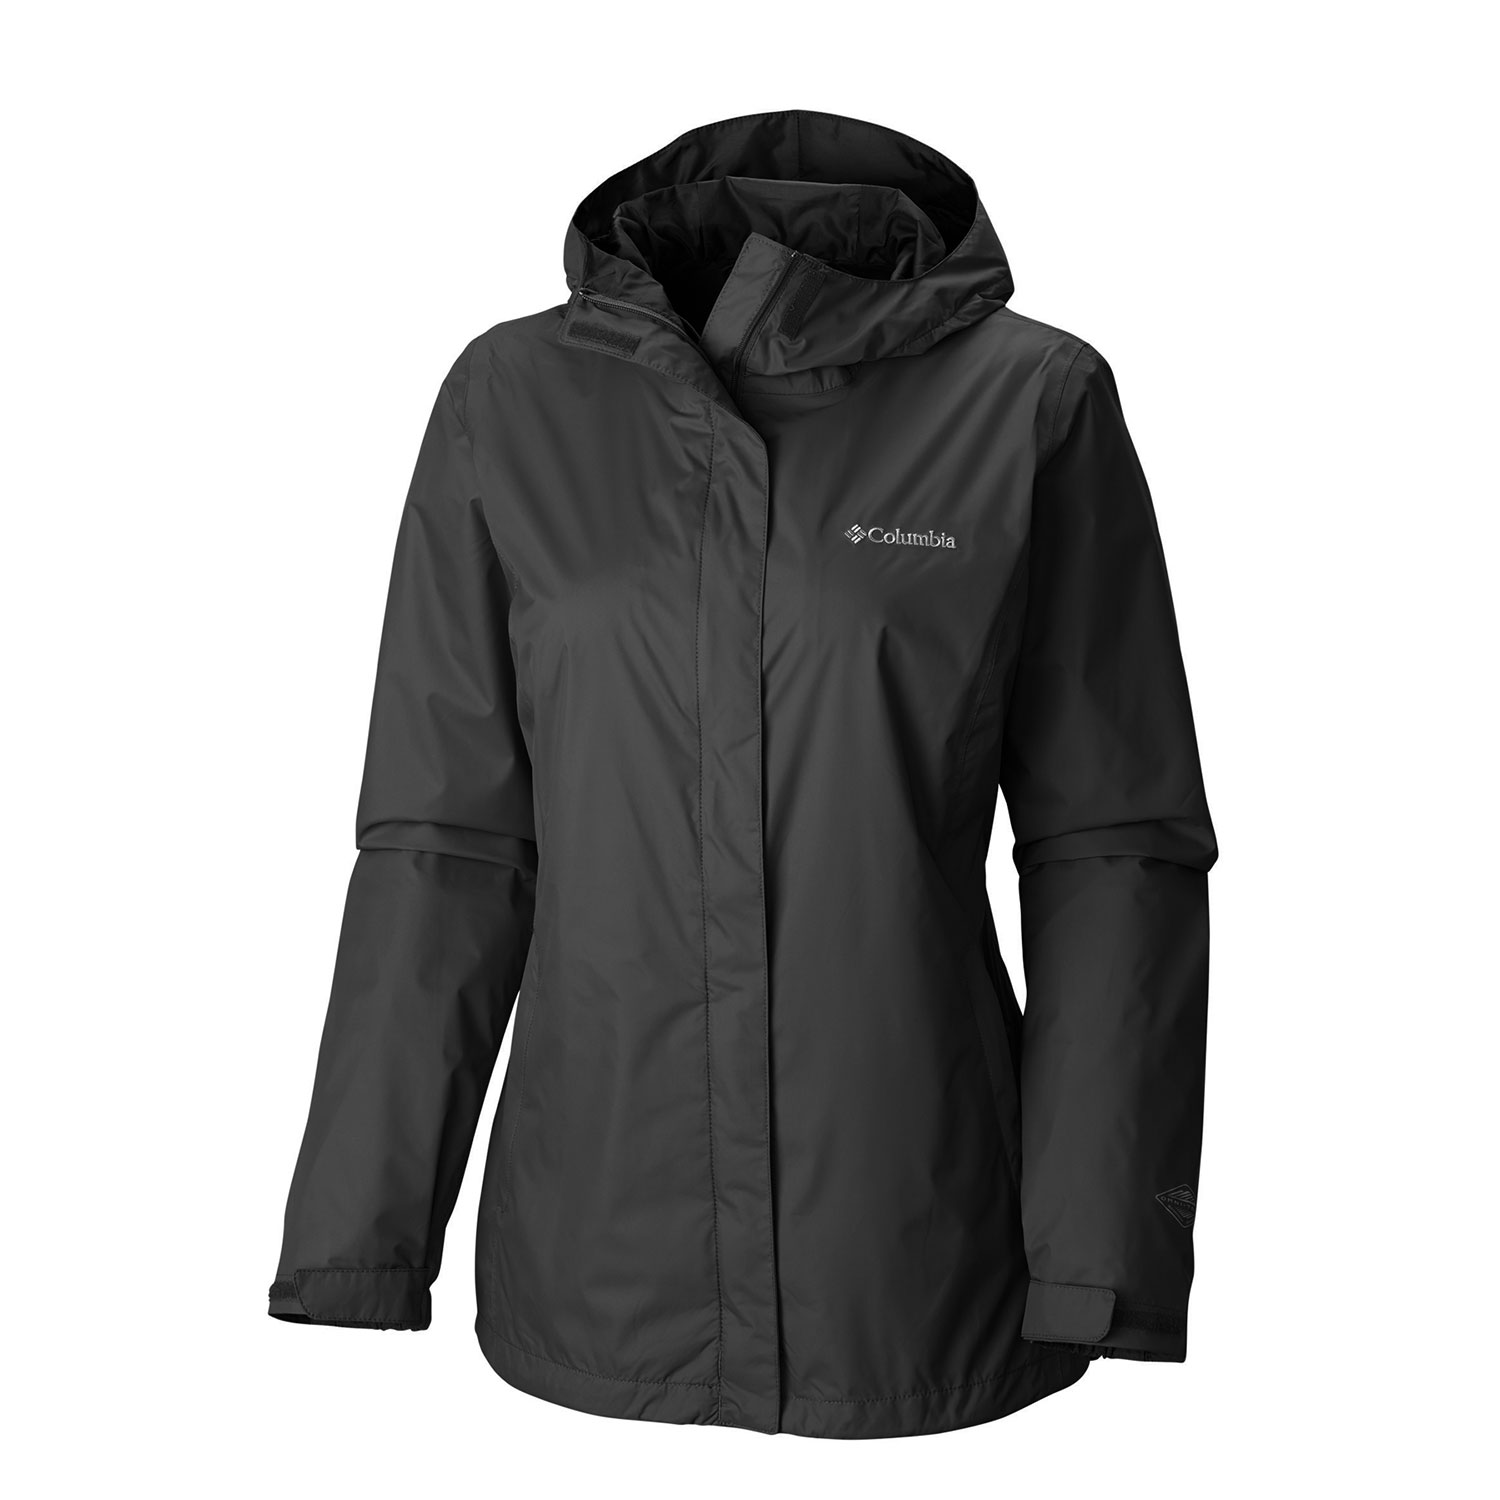 Womens columbia rain jacket sale